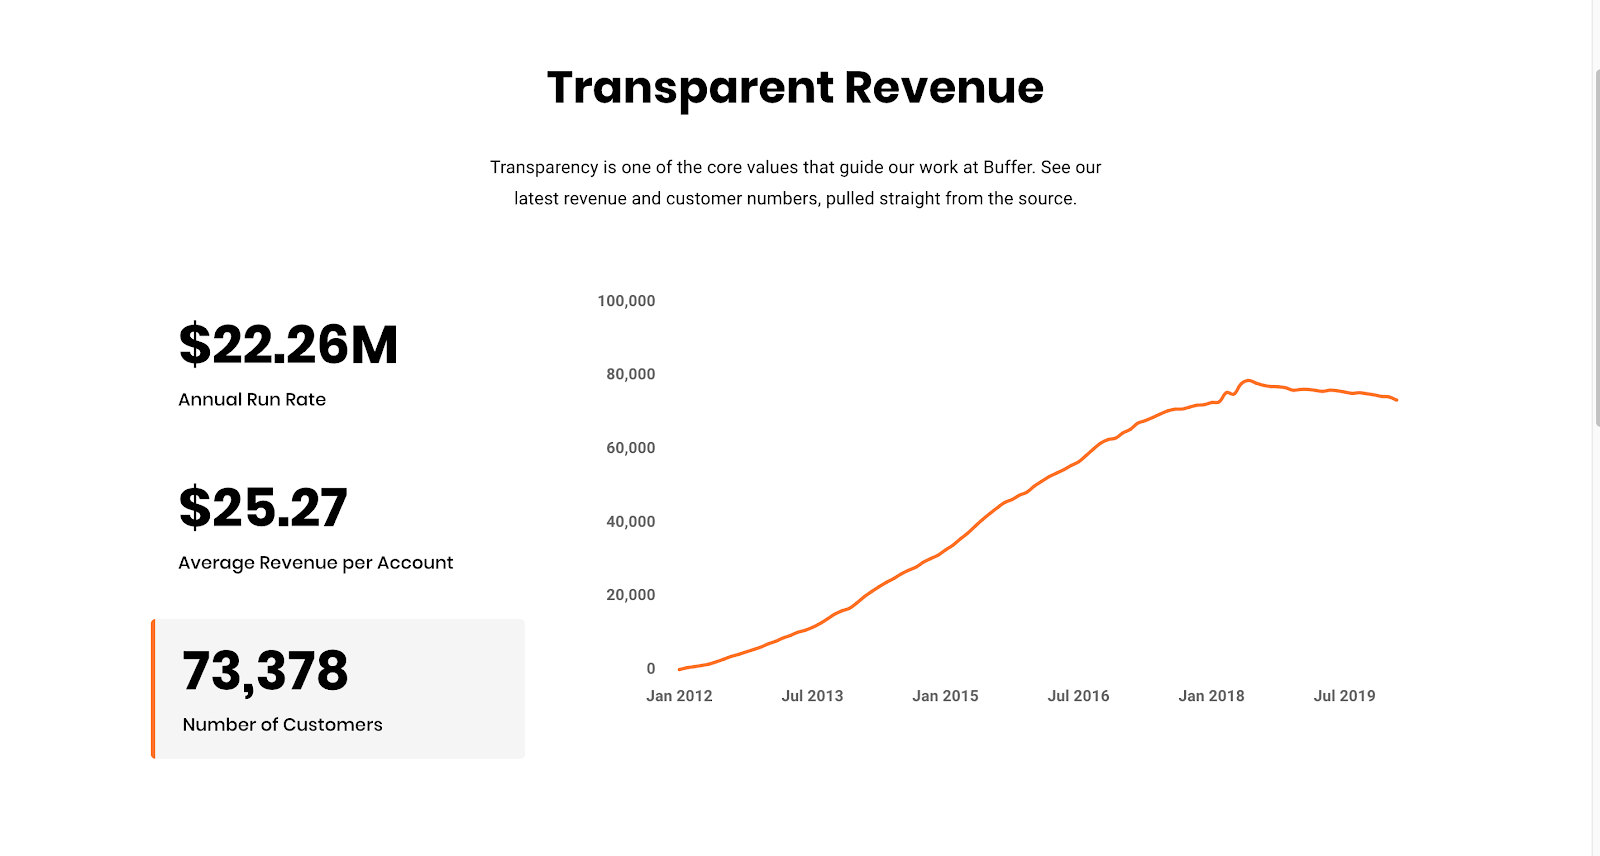 Data from Buffer's Transparent Revenue Dashboard